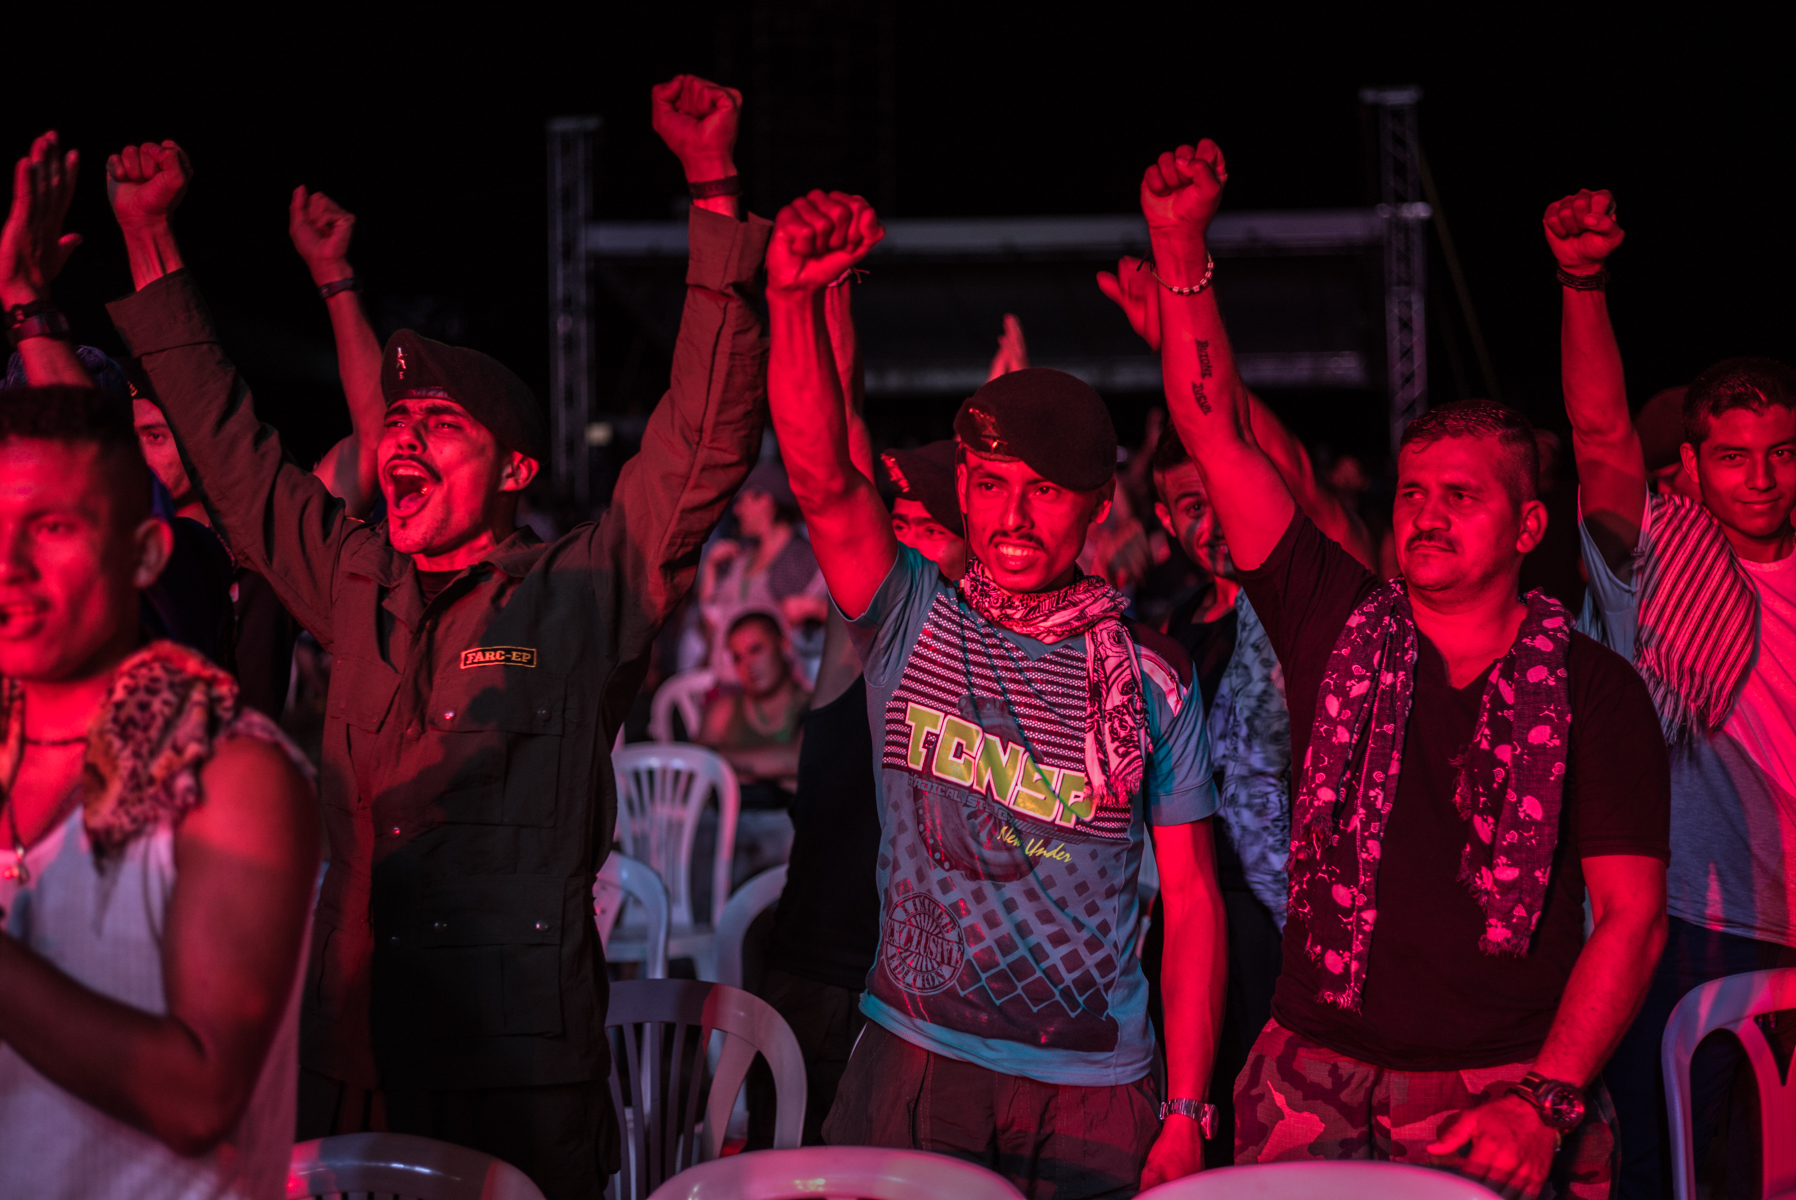 September 19, 2016. Members of El Bloque Sur of FARC celebrate the ratification of the peace agreement between FARC and the Colombian Government. Conferences have been clandestine and internal decisions of the organization. At the X Conference the peace agreement was ratified by FARC members. Caqueta, Colombia.